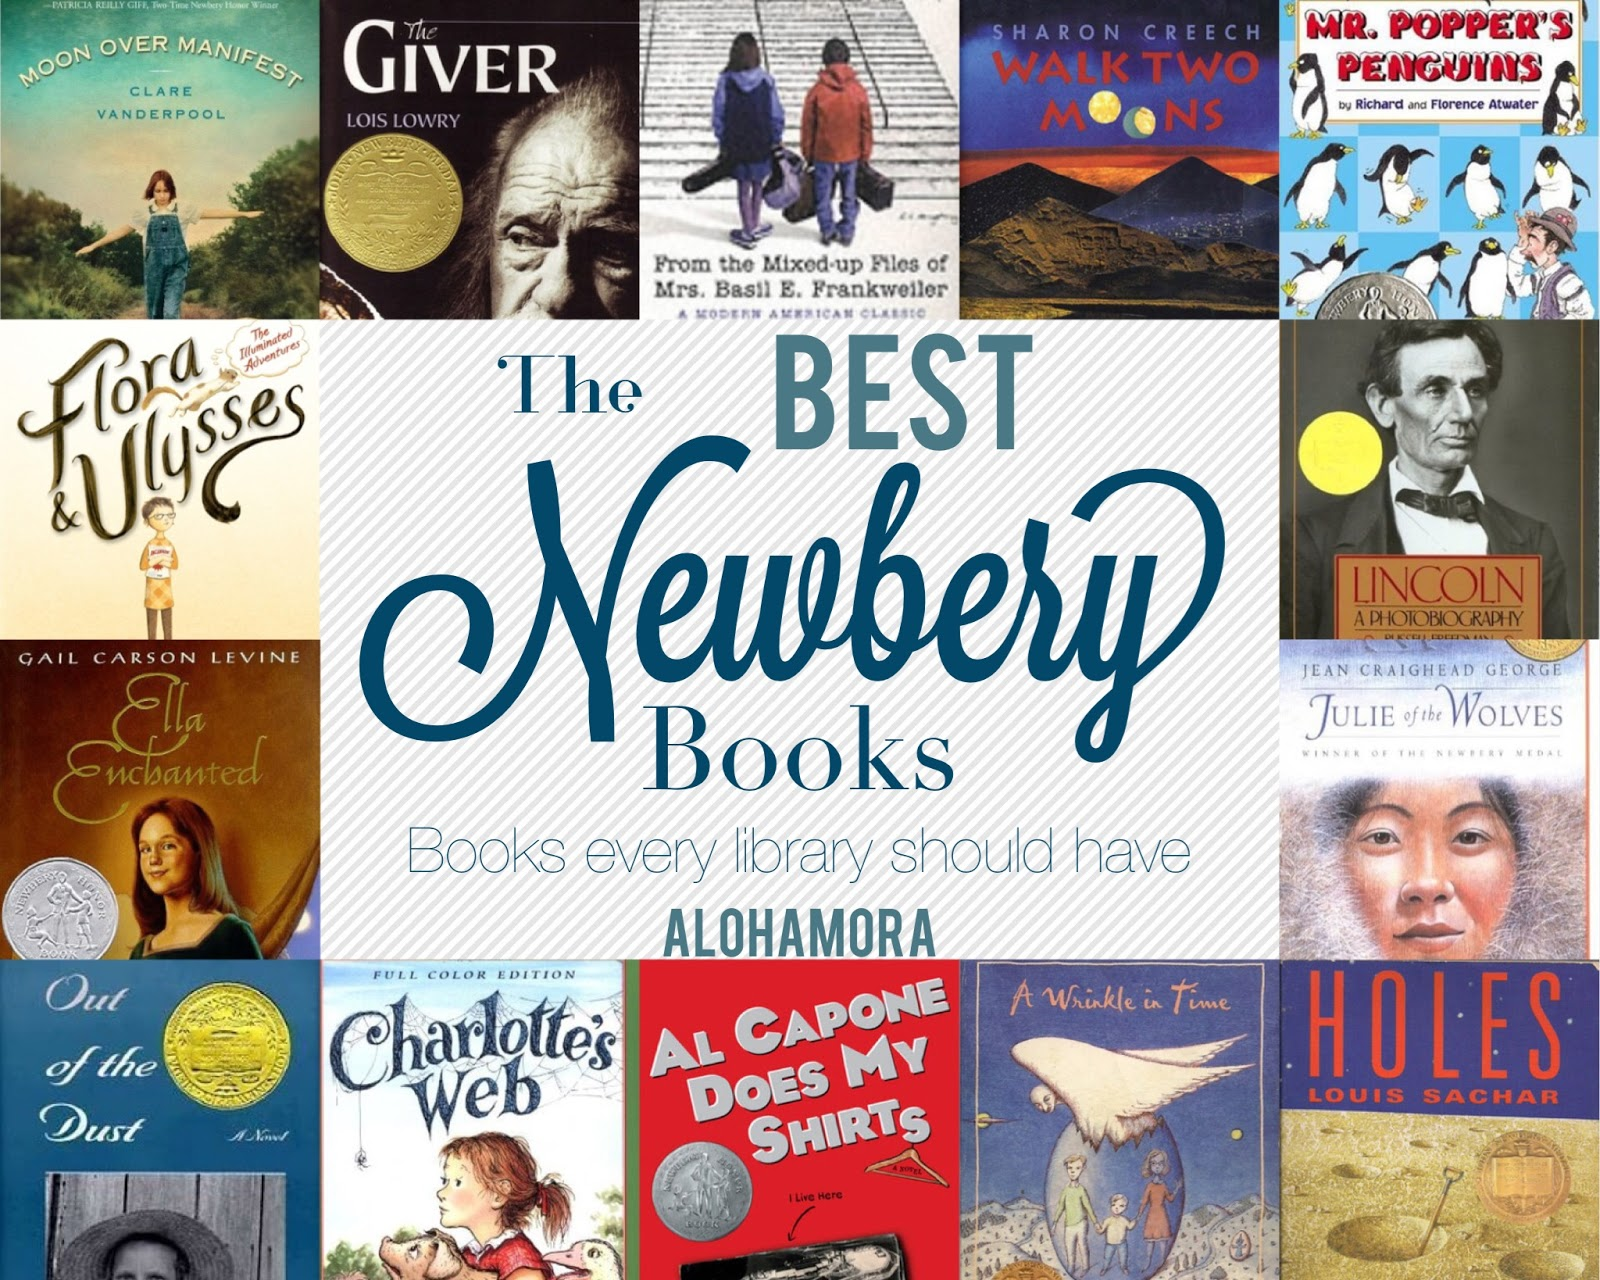 The 14 Best Newbery Award Books.  These books make great read alouds for a parent or classroom teacher.  These books are great for reluctant readers.  Non-fiction, historical fictions, realistic fictions, humor, fantasy, and science fiction.  All amazing books that everyone should have in their library. Alohamora Open a Book http://alohamoraopenabook.blogspot.com/